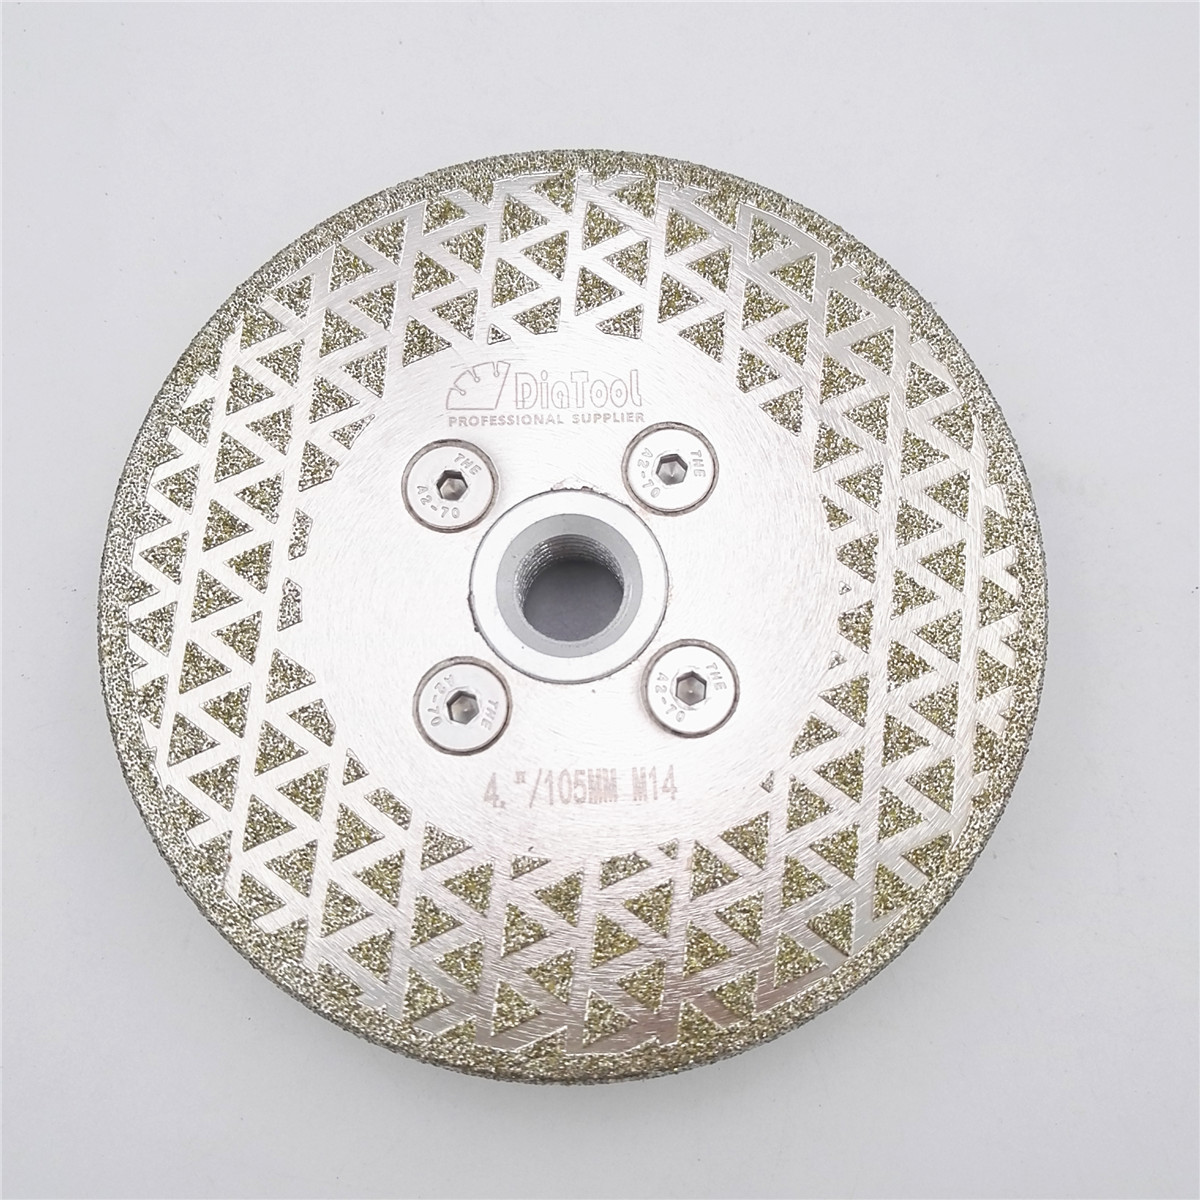 DIATOOL 1pc Electroplated Diamond Cutting & Grinding Blade M14 Thread Marble Single Side Coated Diamond disc